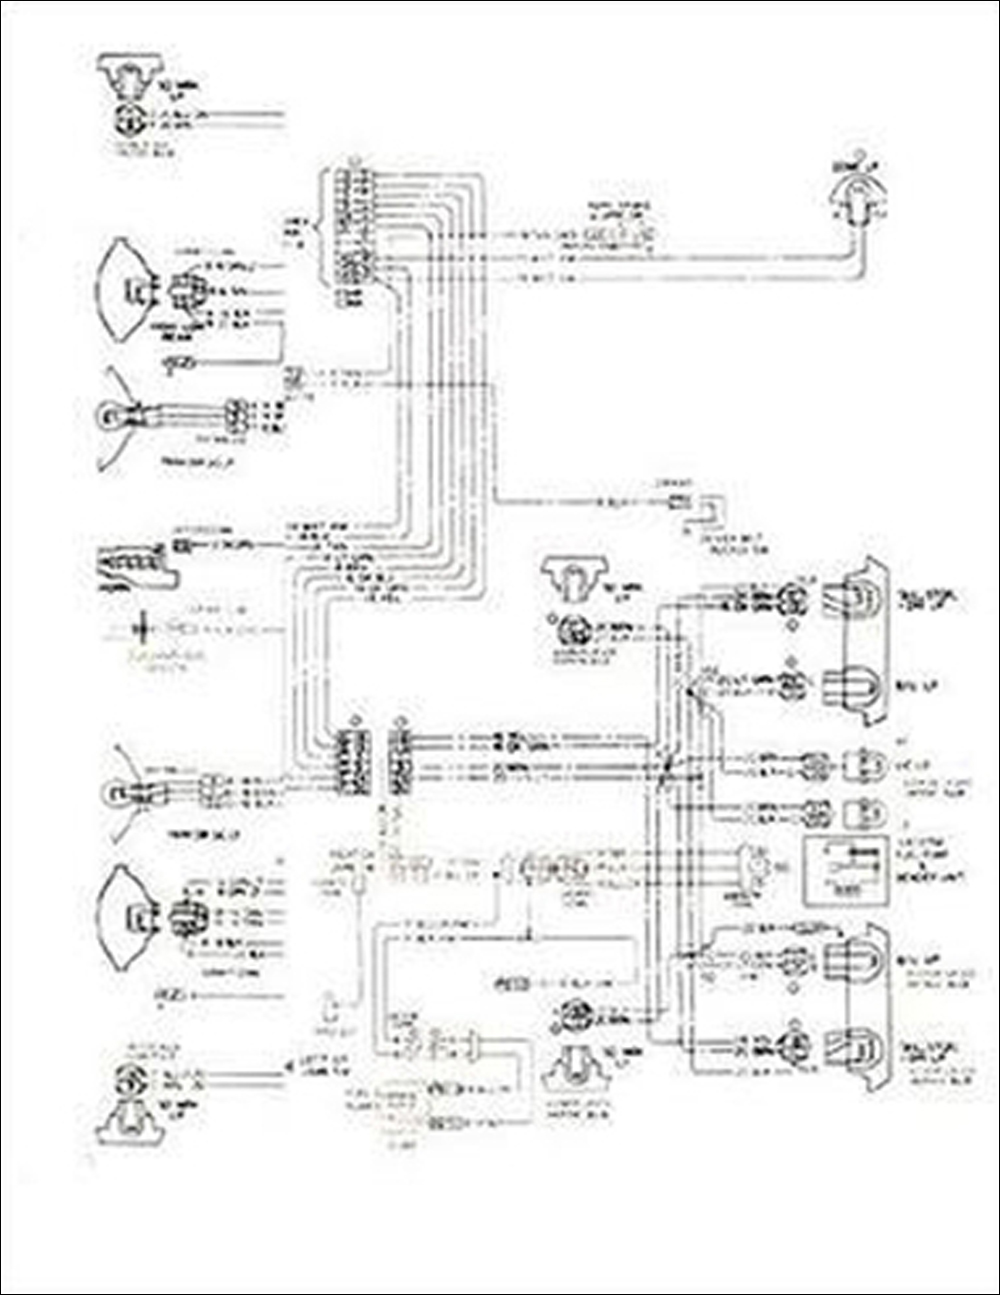 Monte Carlo Schematic Wiring Diagram Schemes 1988 Ss 1977 Chevelle Malibu And Original 1996 Chevy